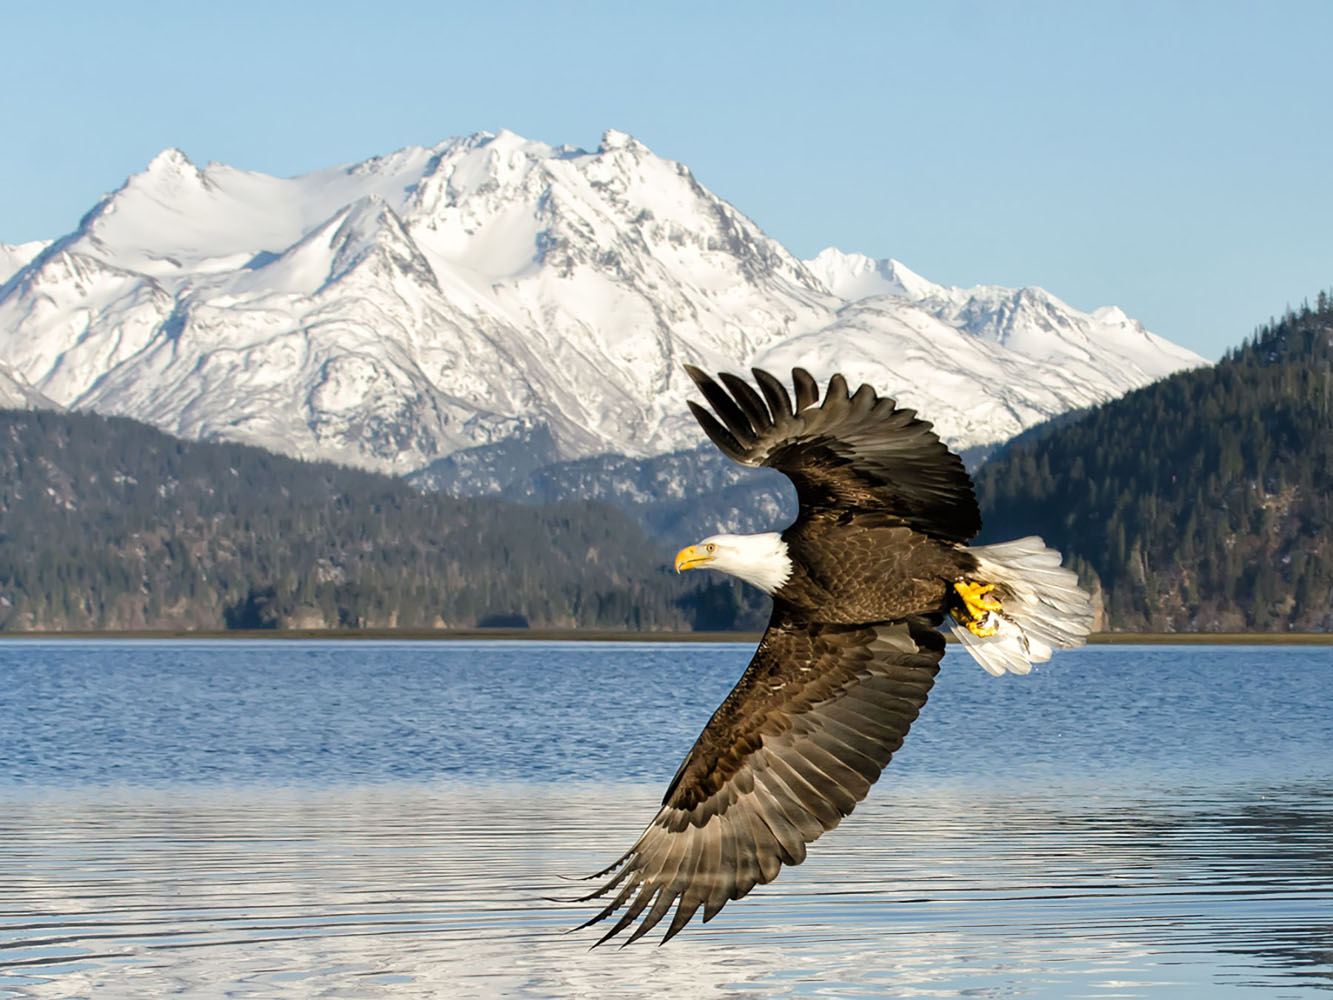 A Bald Eagle flying with the backdrop of one of Alaska's glaciers